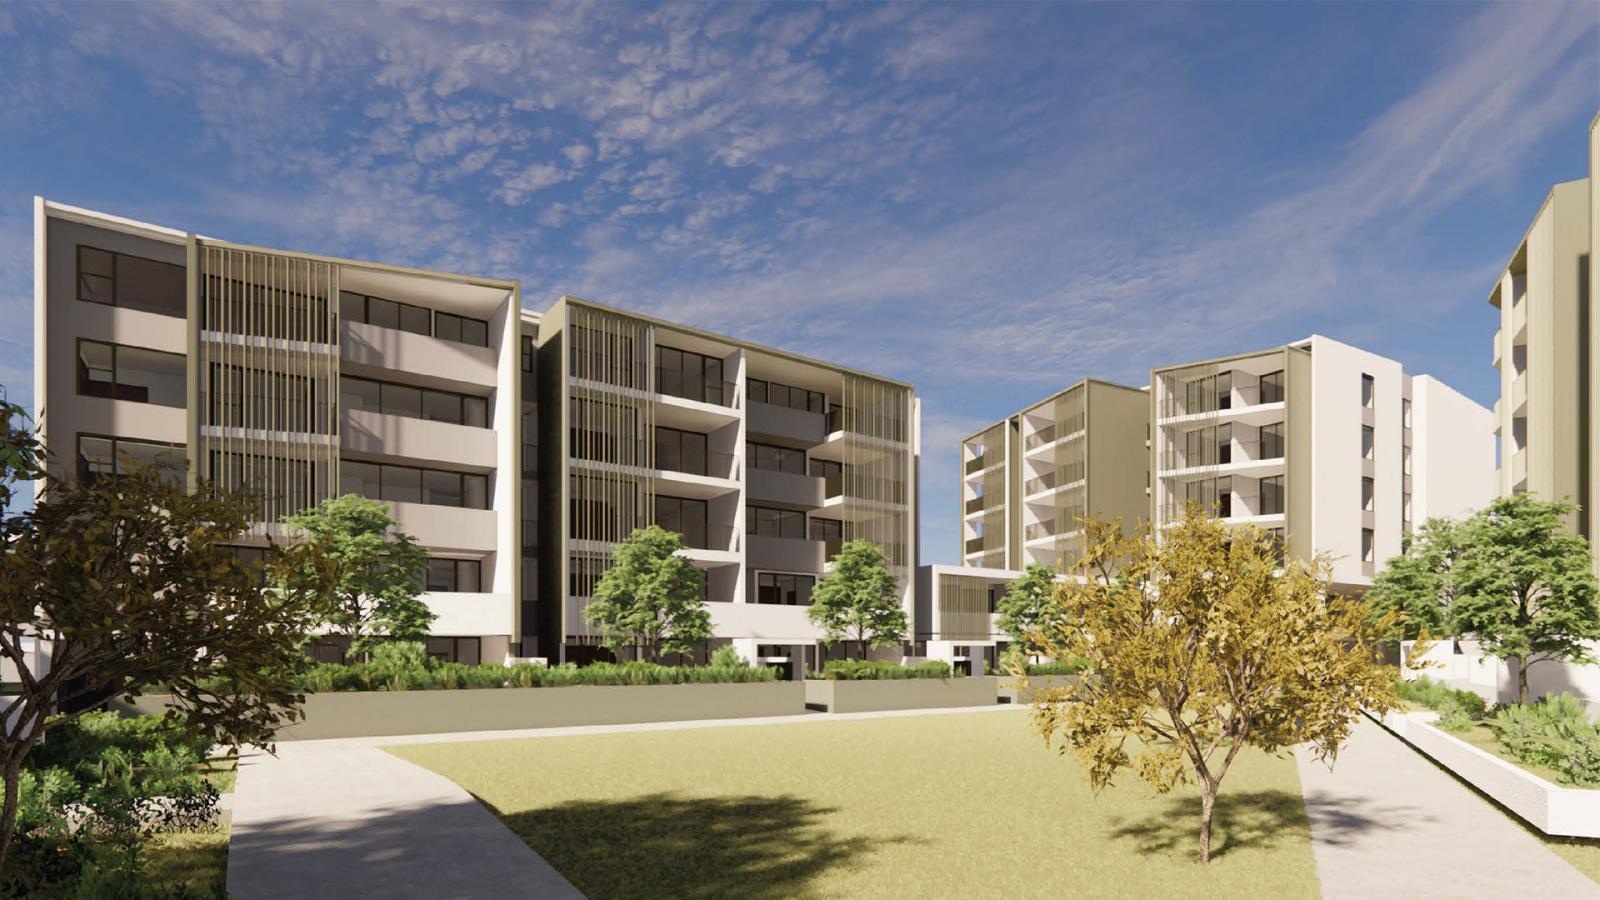 Artist's impression of the Francis and Lingrove buildings at Aura's Kingsford Terrace Corinda